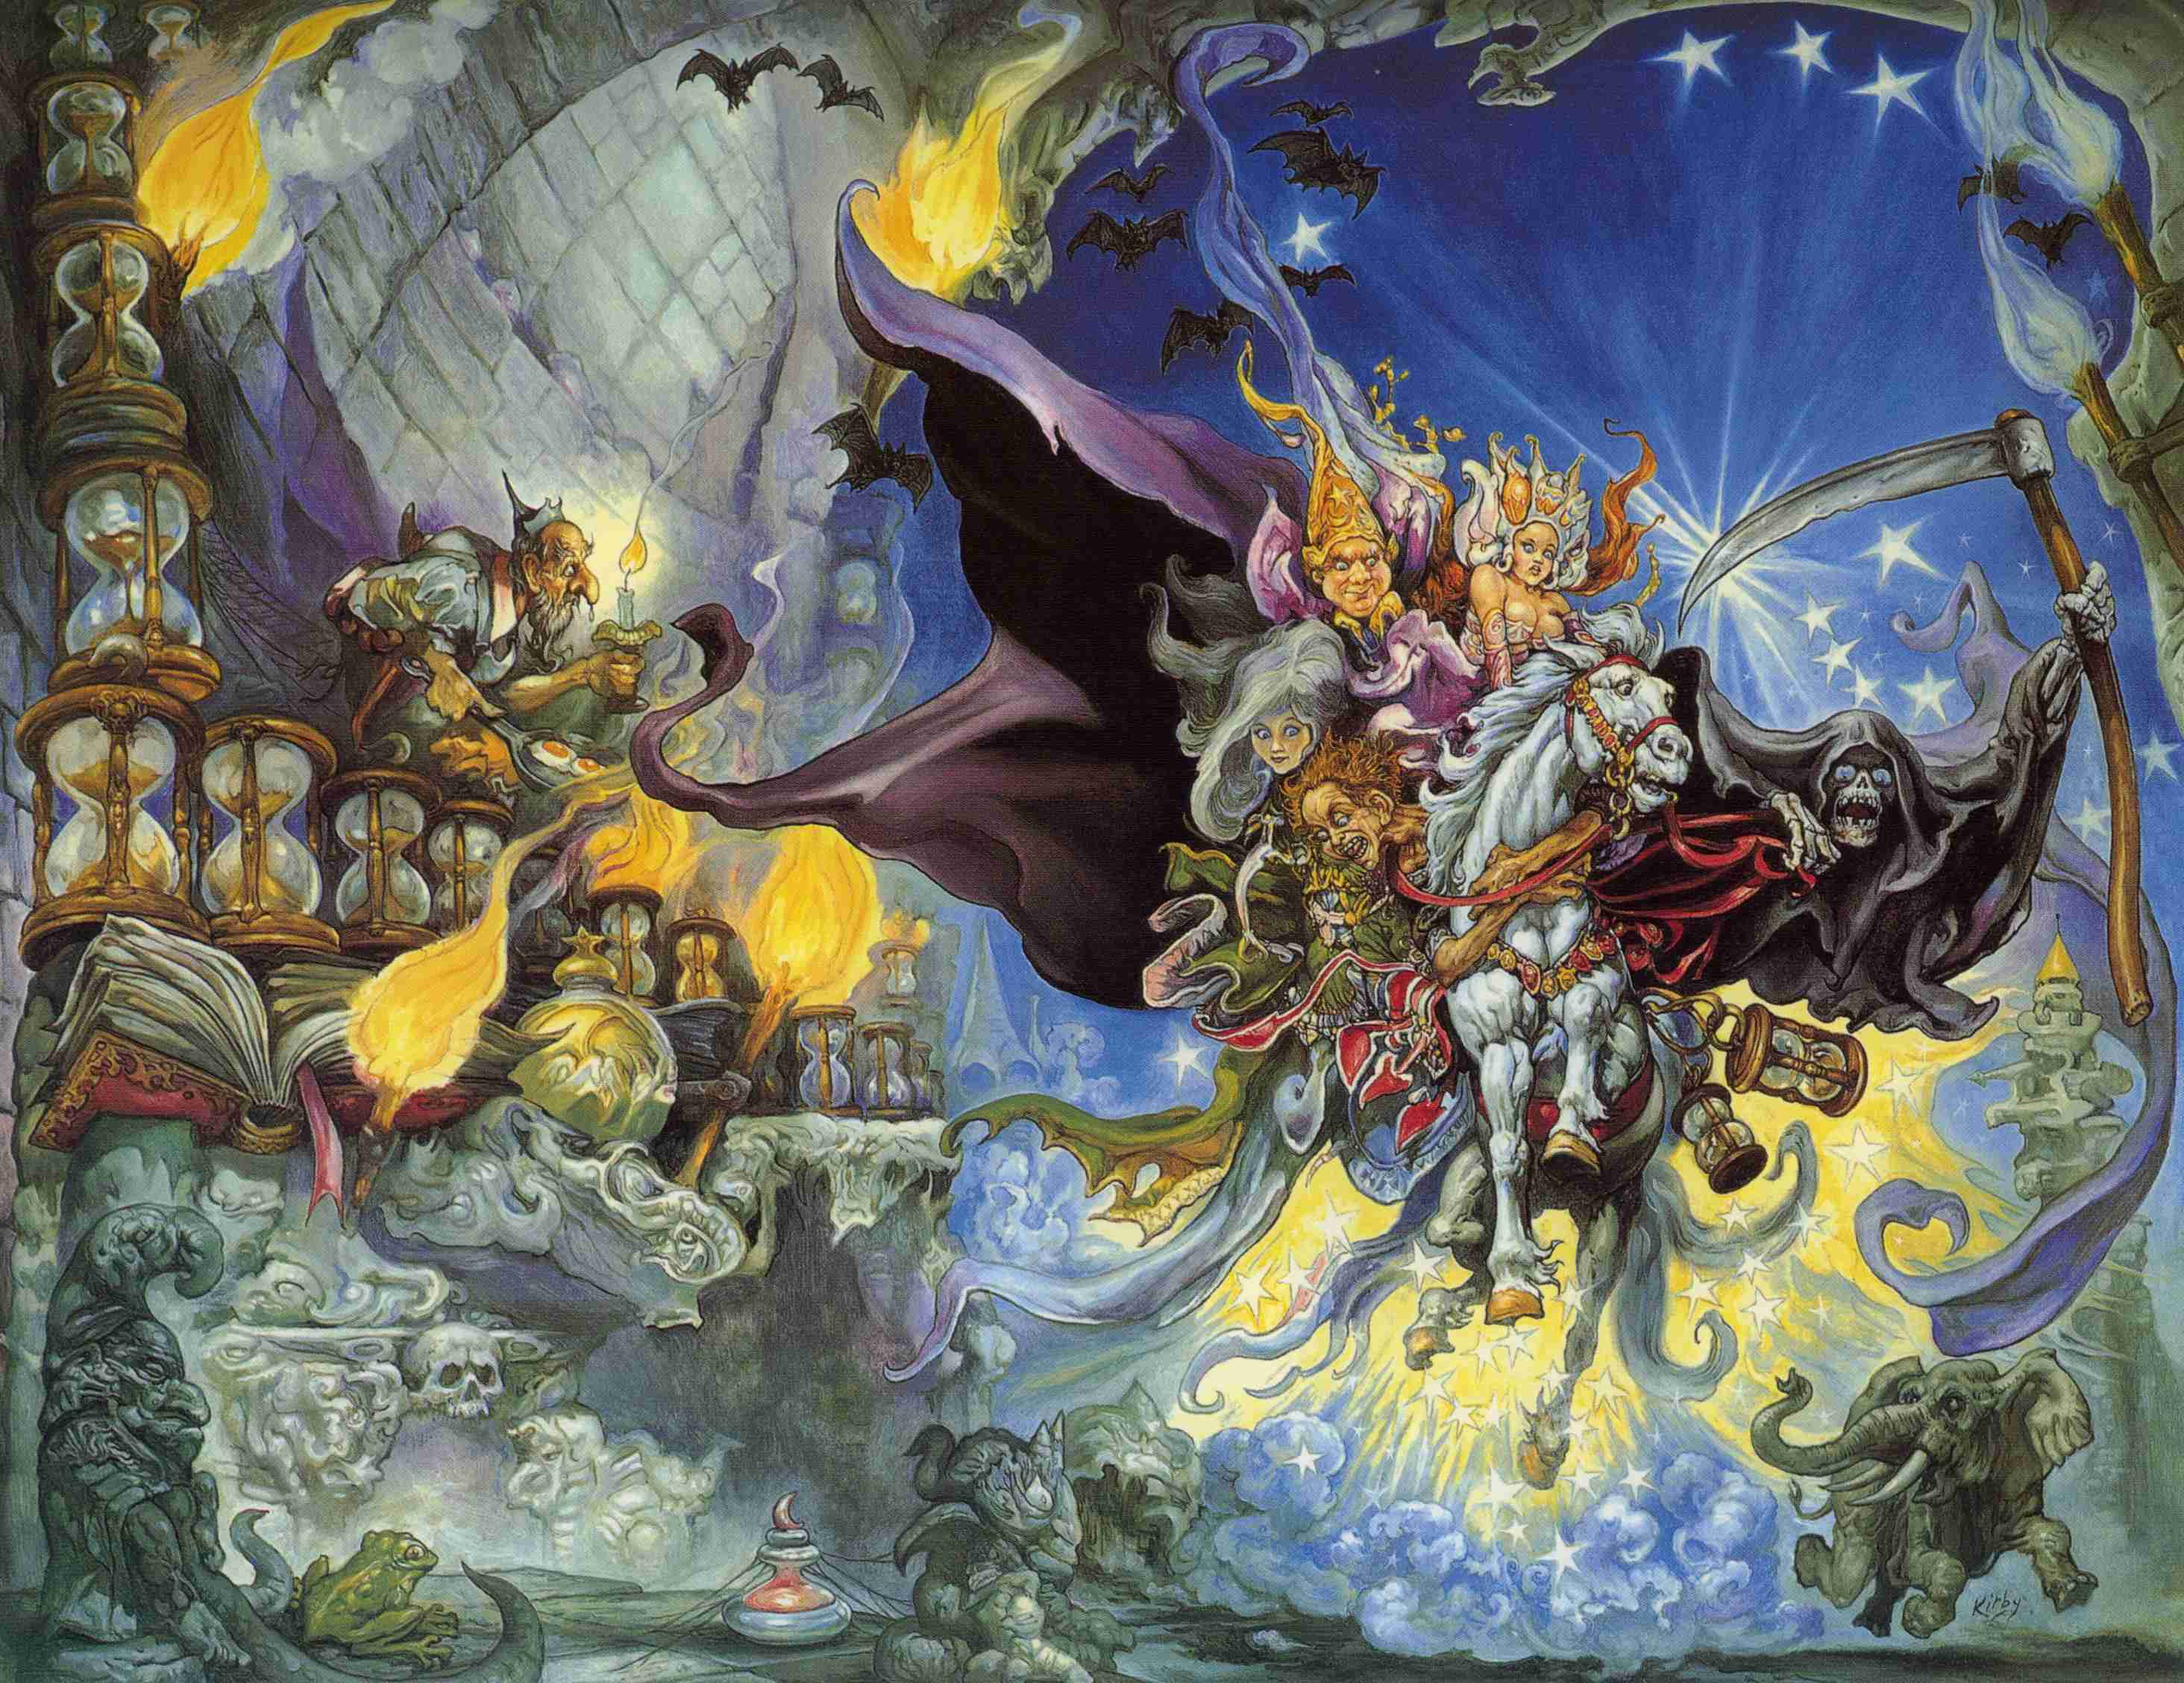 The cover art for the UK version of the fourth Discworld novel, <em>Mort</em>, by Josh Kirby.